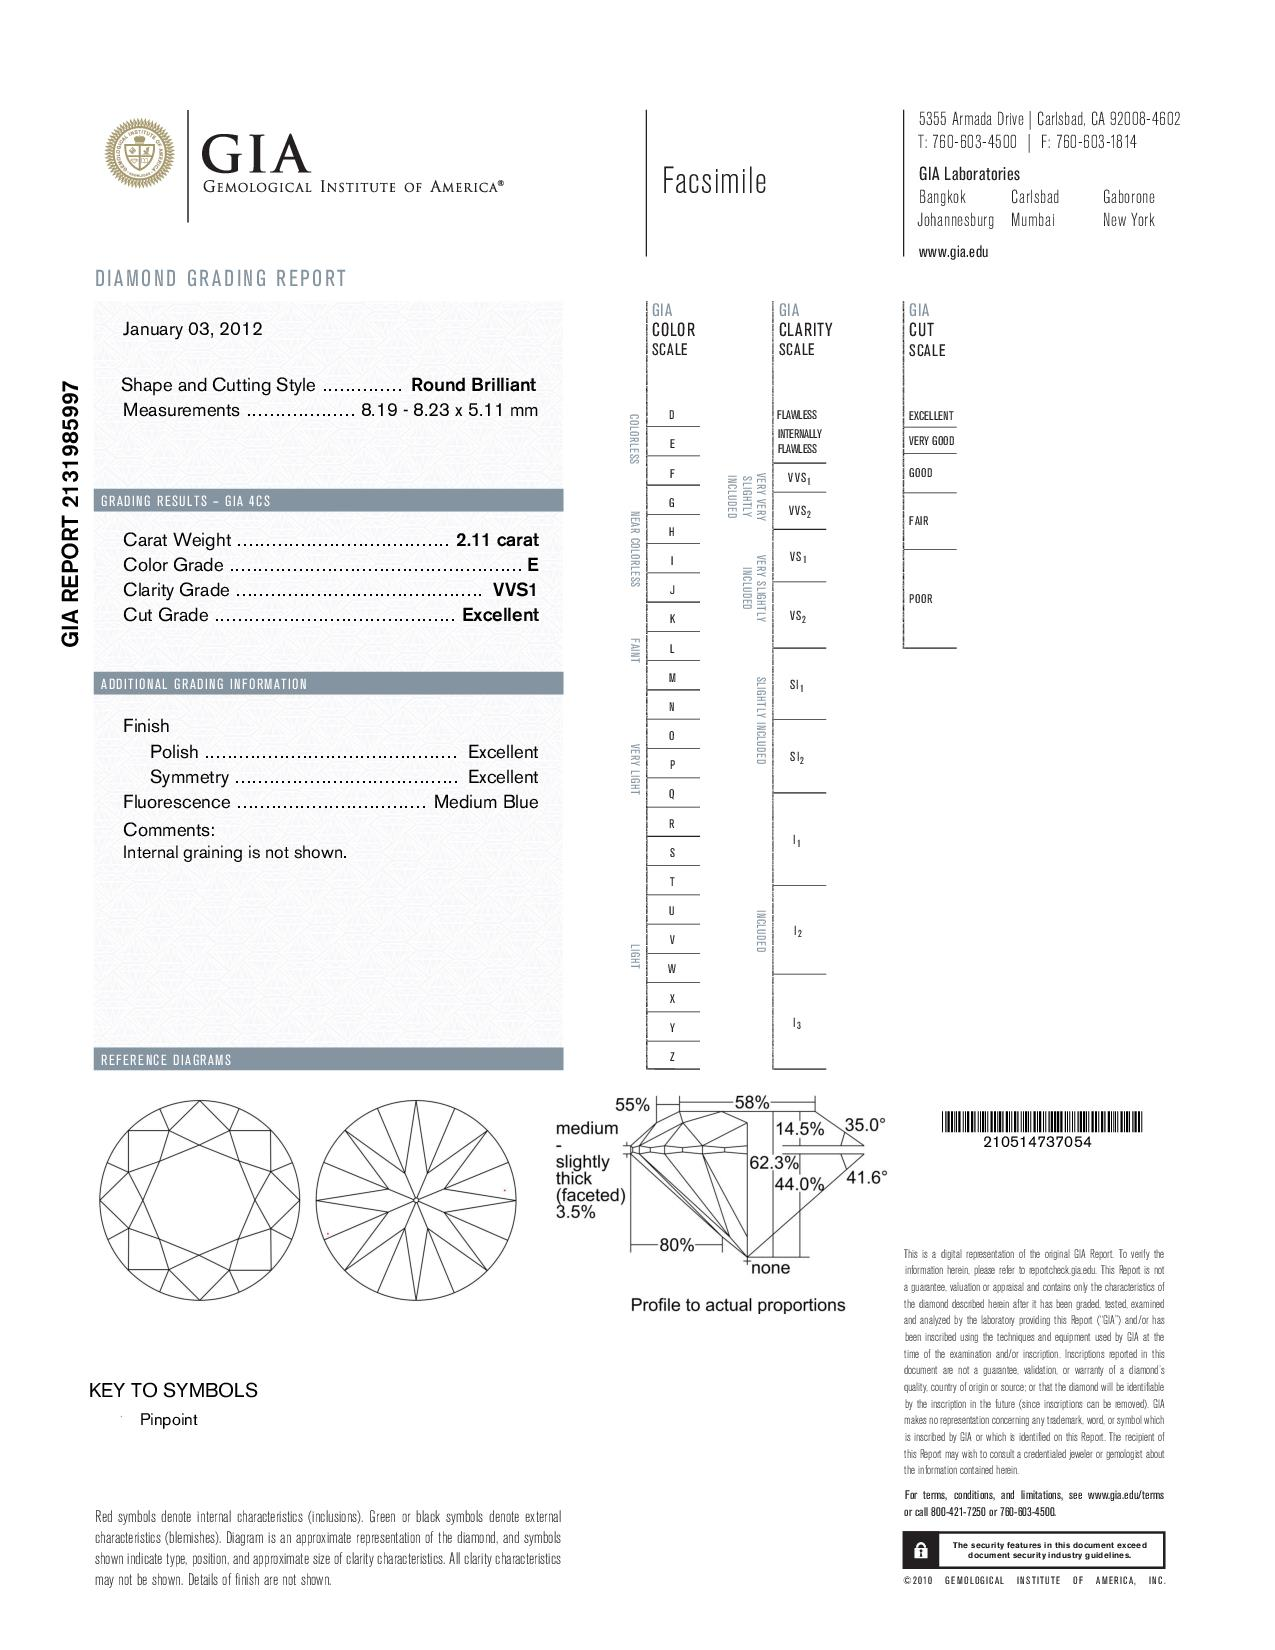 This is a 2.11 carat round shape, E color, VVS1 clarity natural diamond accompanied by a GIA grading report.